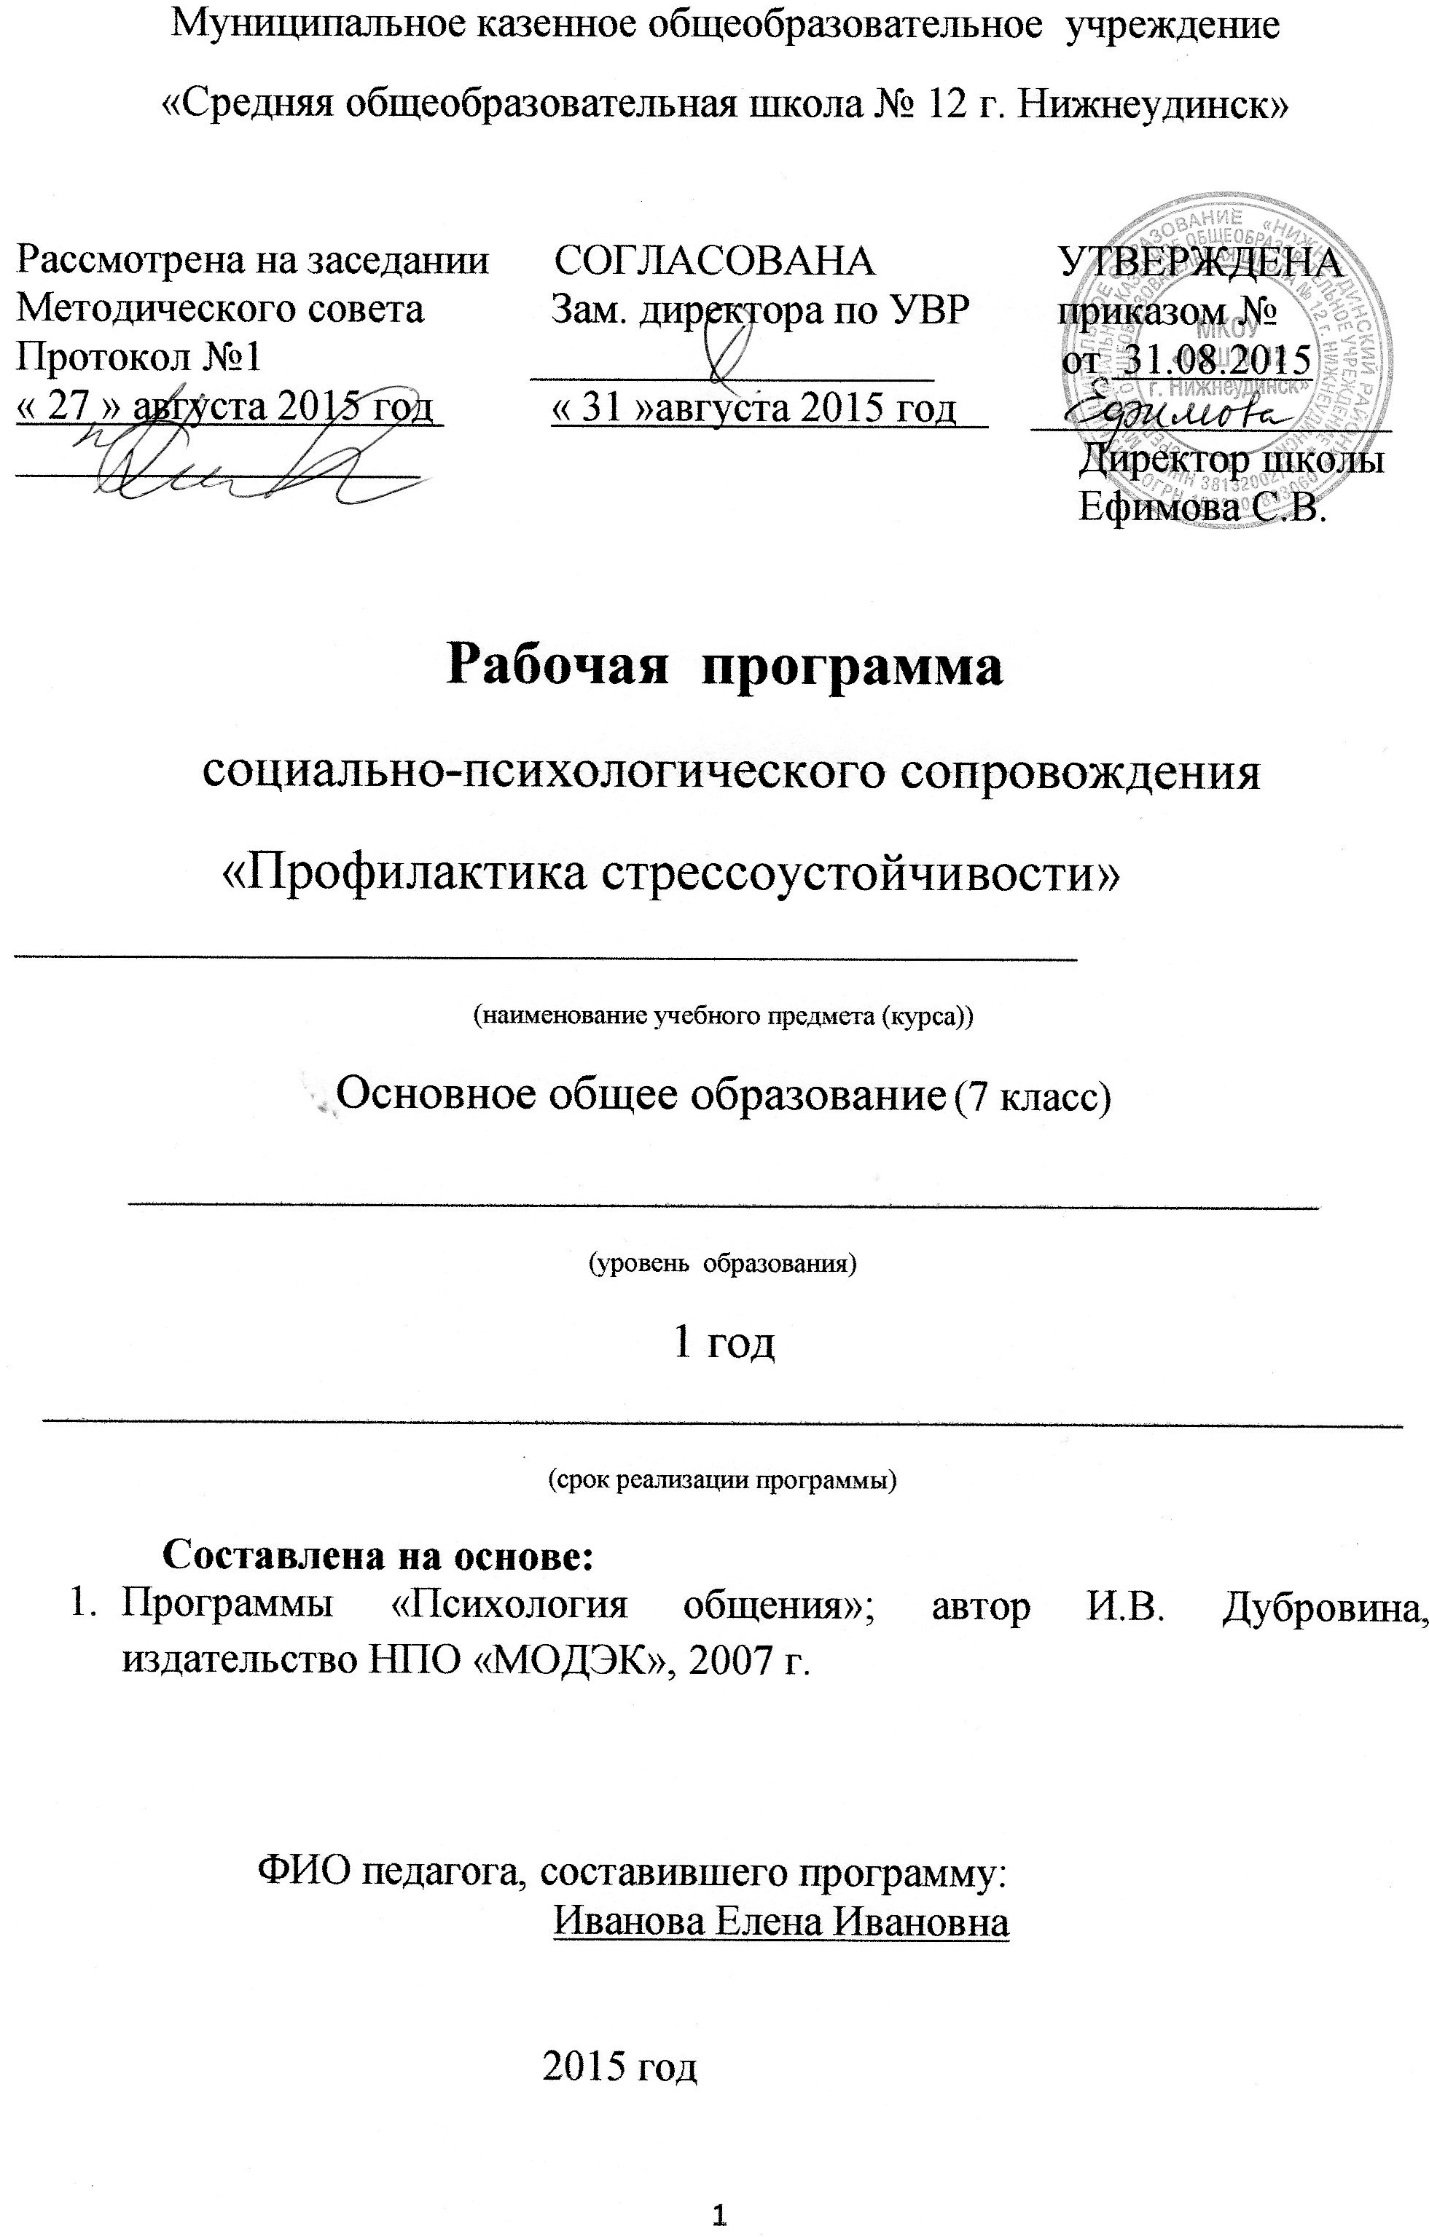 C:\Users\Елена\Pictures\img002.jpg